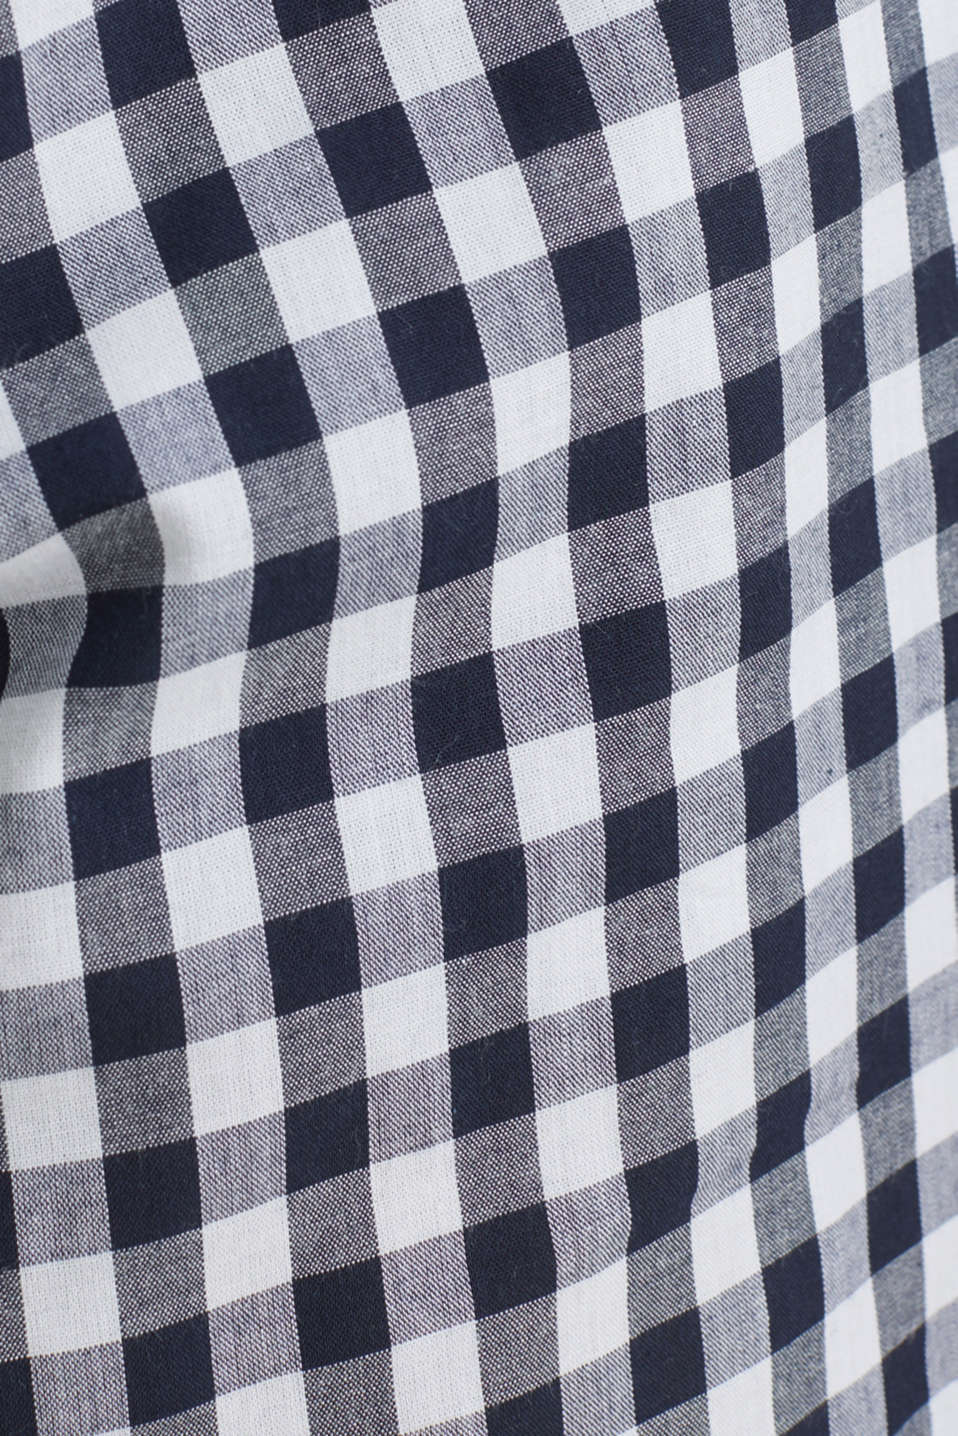 Woven pyjamas with checks, 100% cotton, NAVY 2, detail image number 2